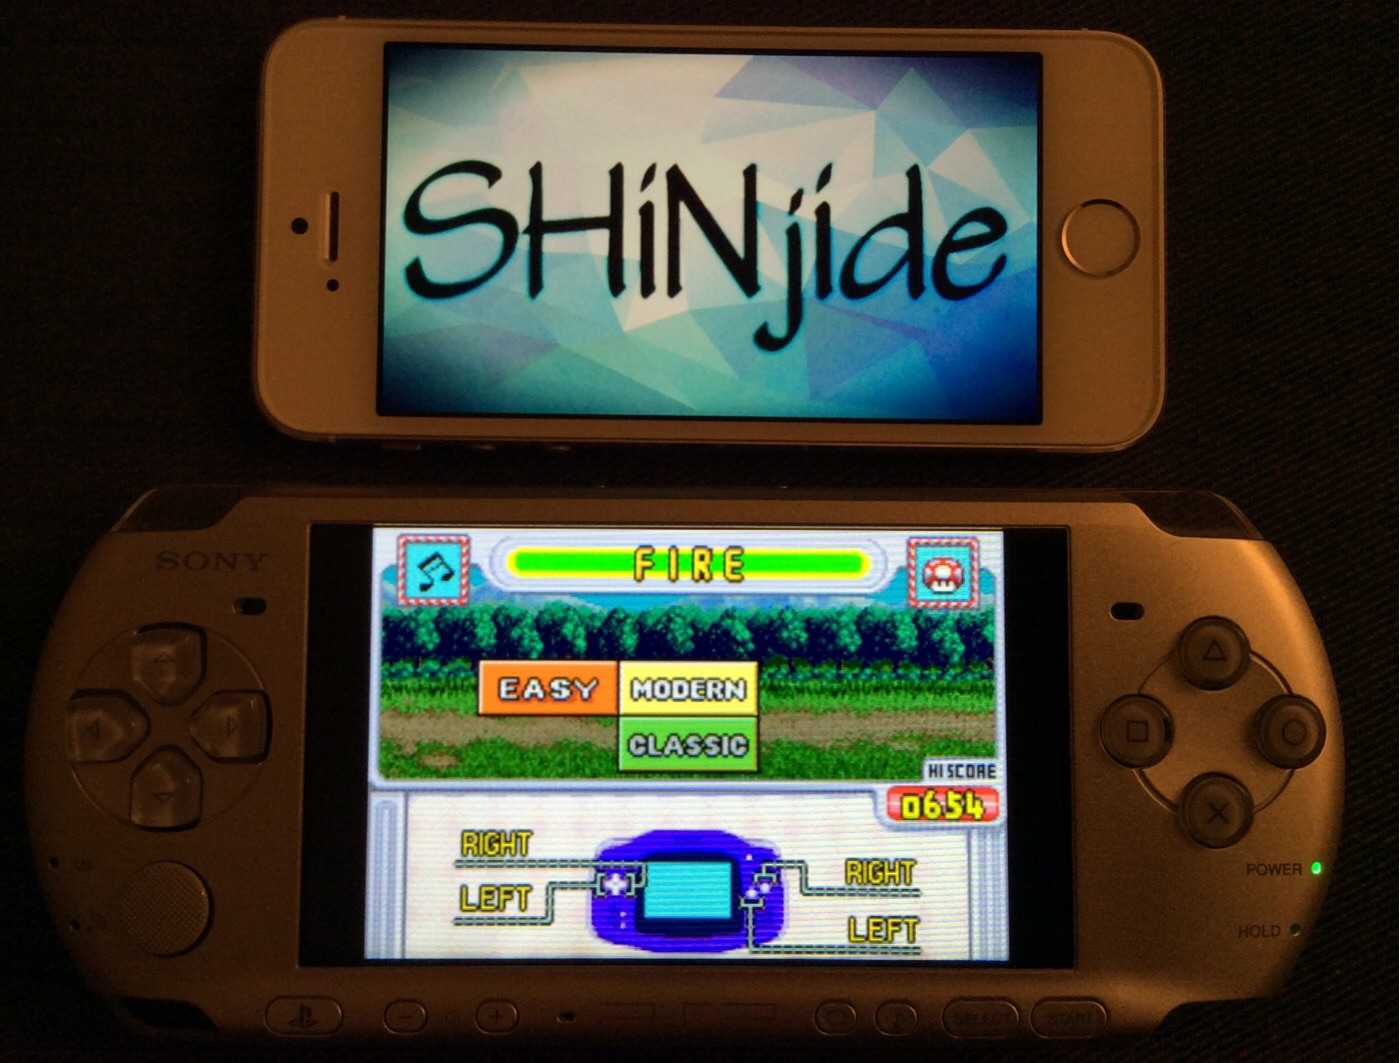 SHiNjide: Game & Watch Gallery 4: Fire [Modern: Easy] (GBA Emulated) 654 points on 2014-09-30 16:41:22